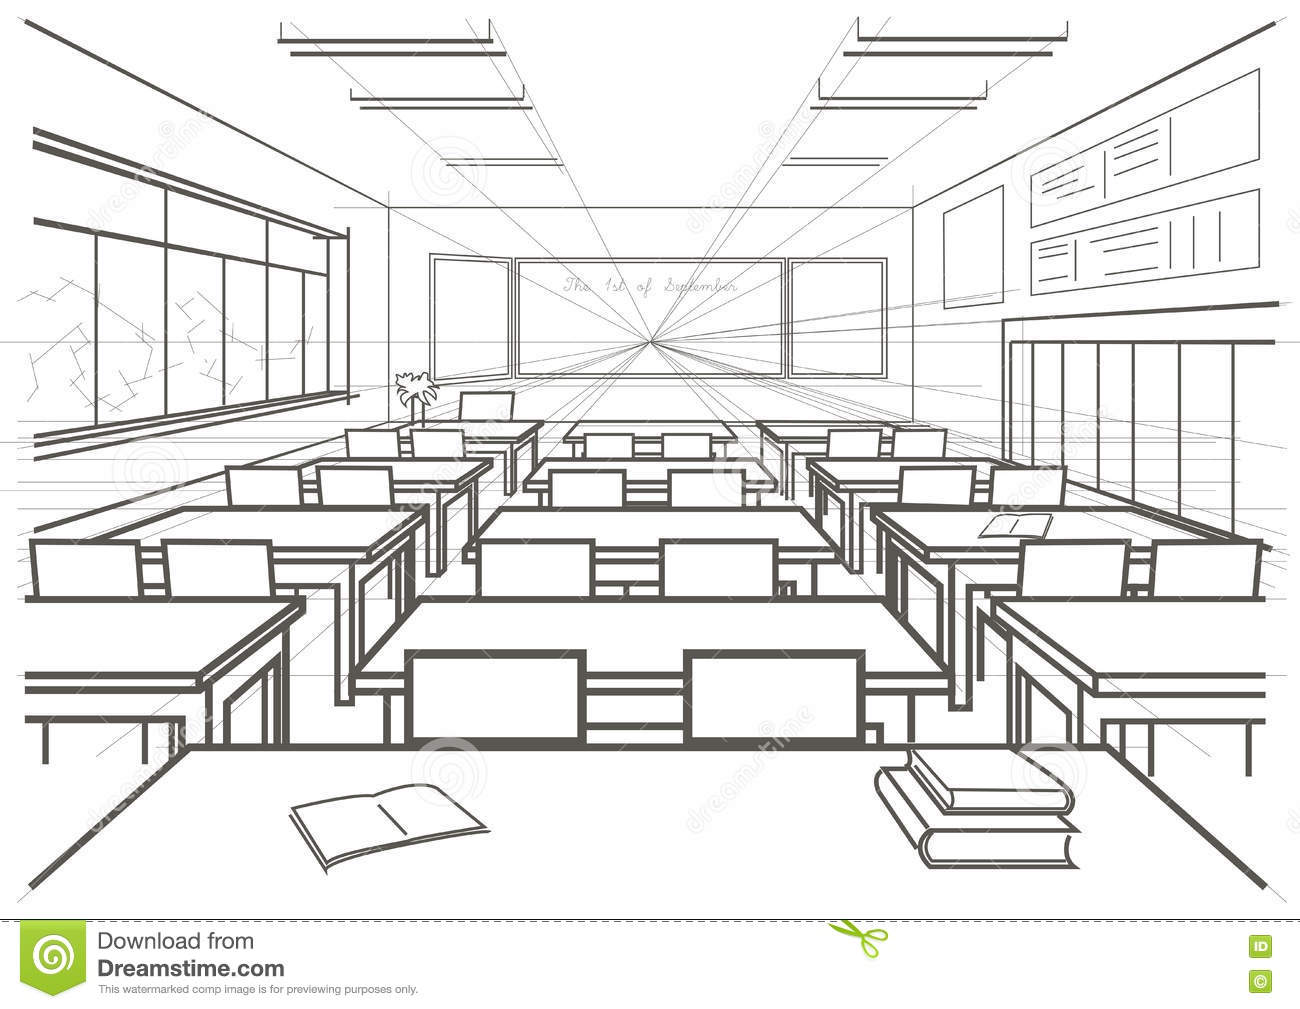 Royalty free vector download architectural sketch interior school